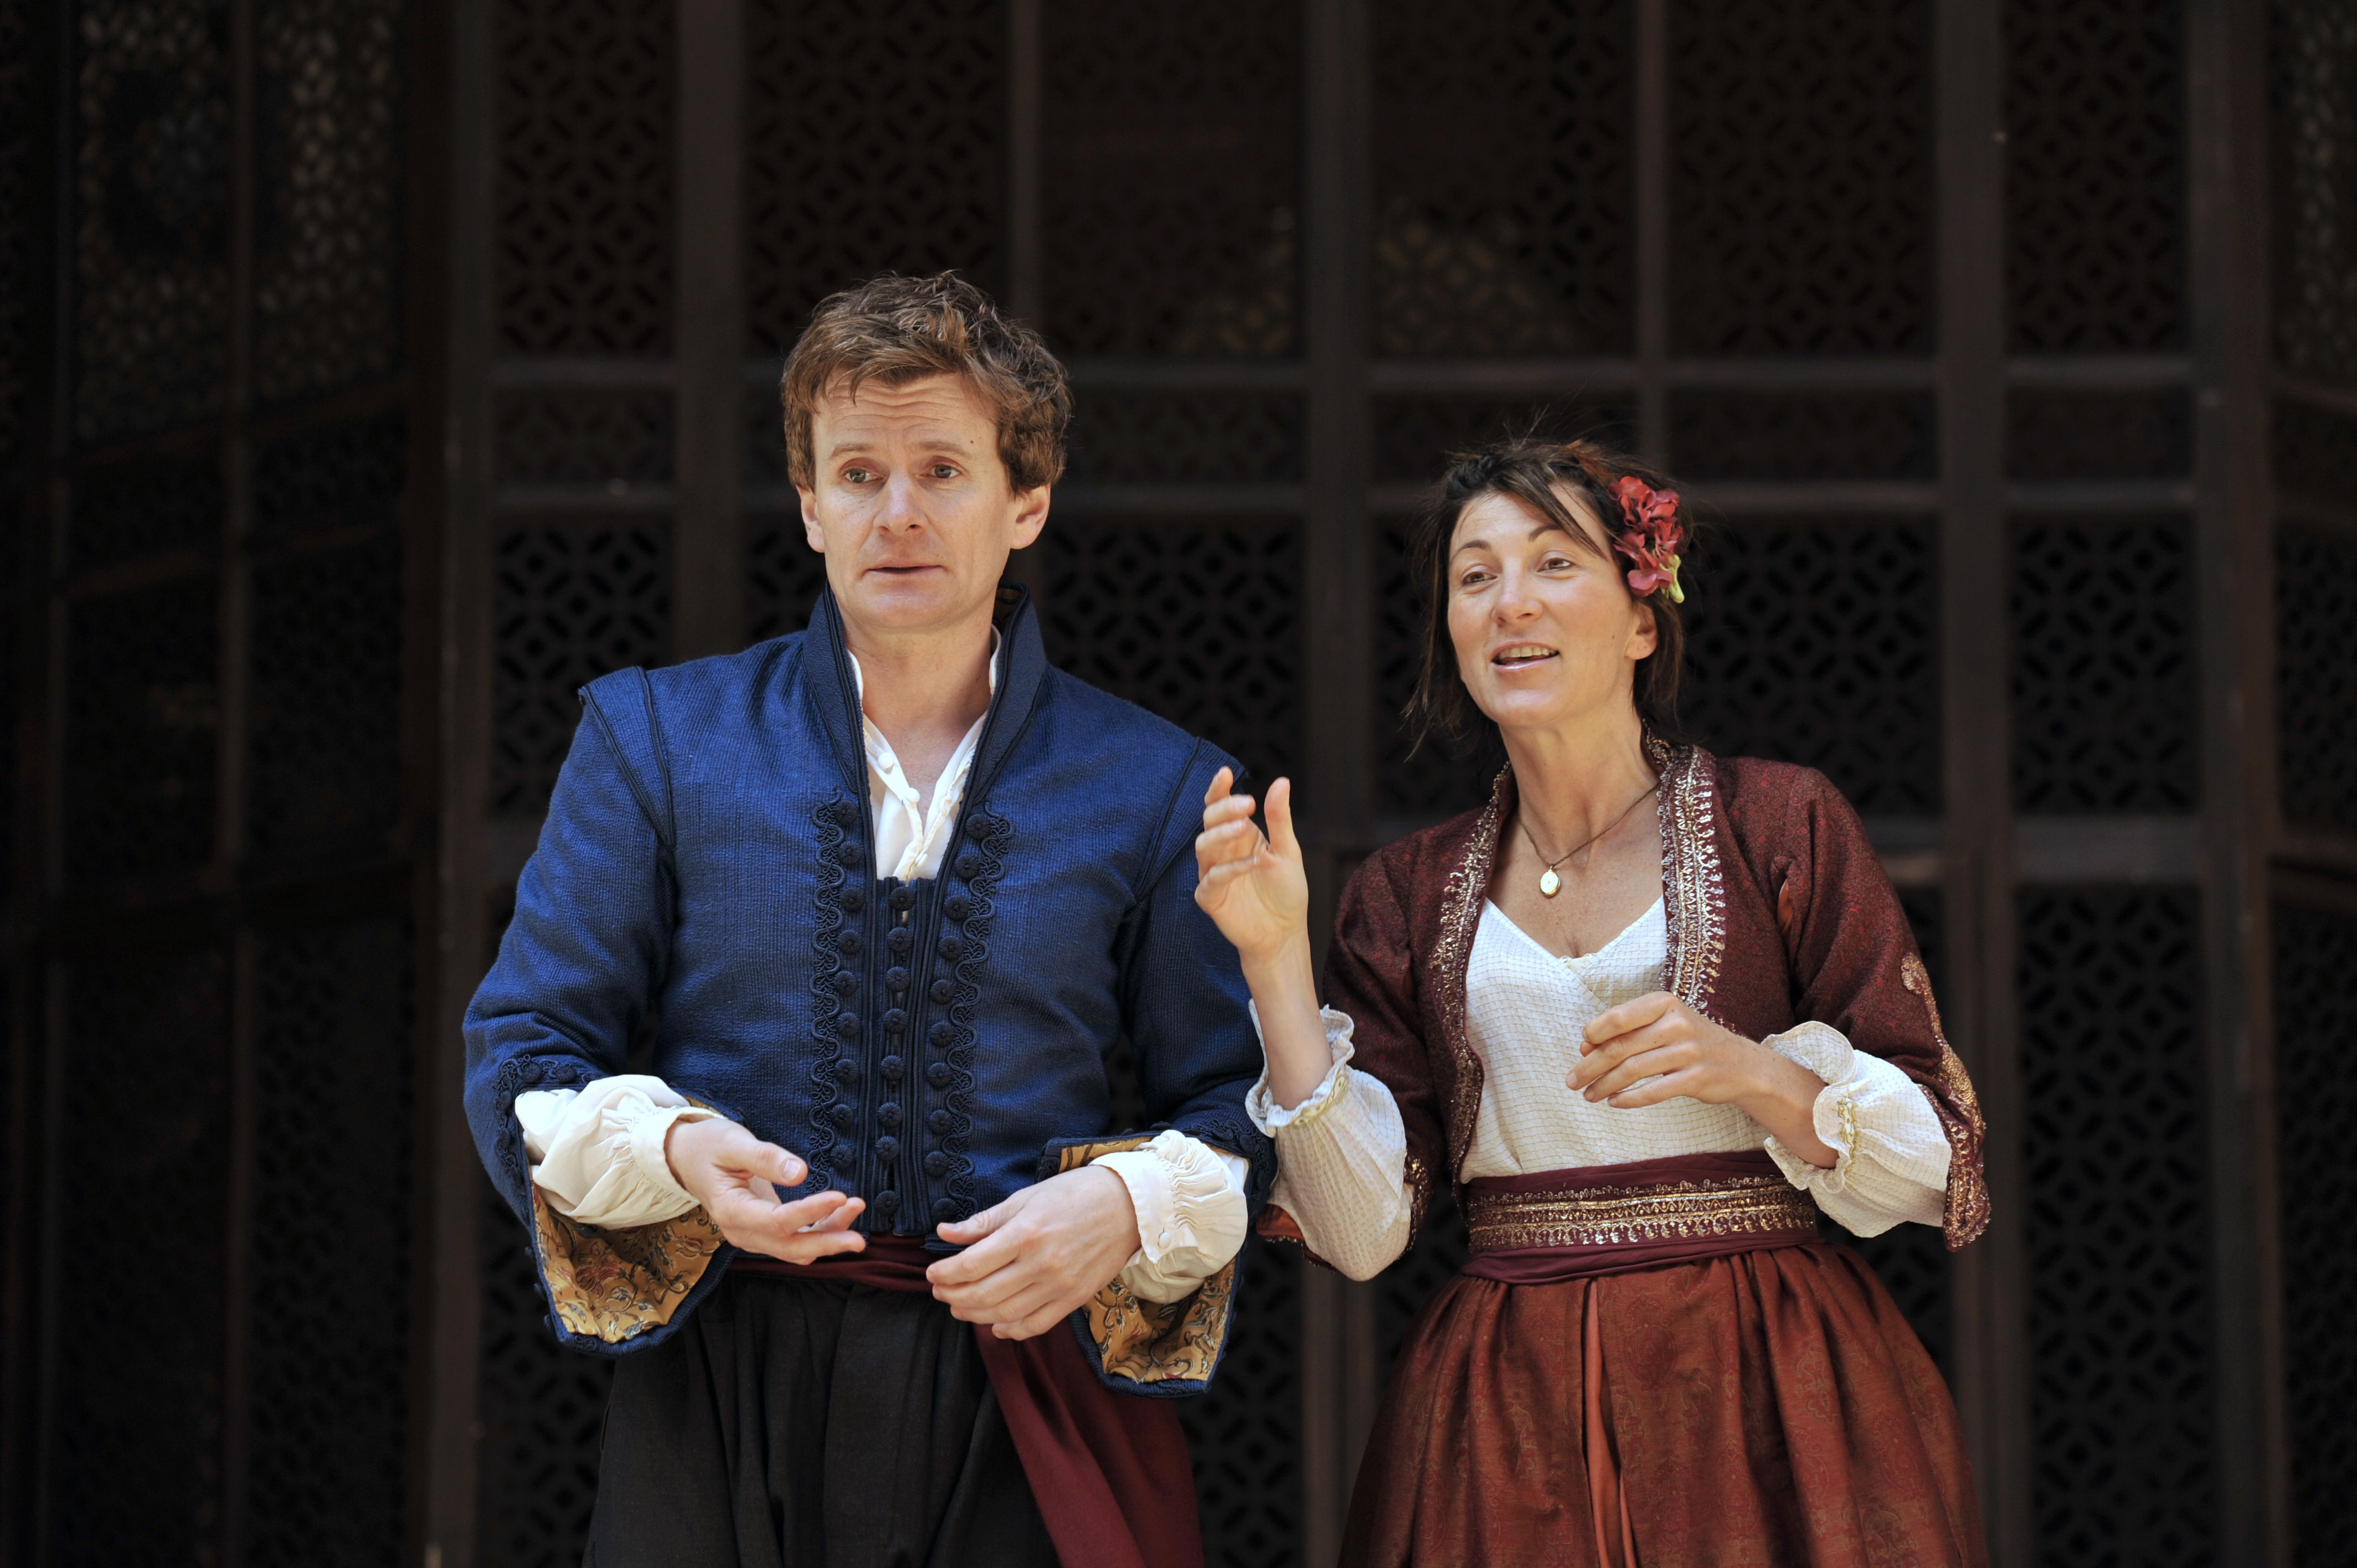 UK -'Much Ado About Nothing' performance in London